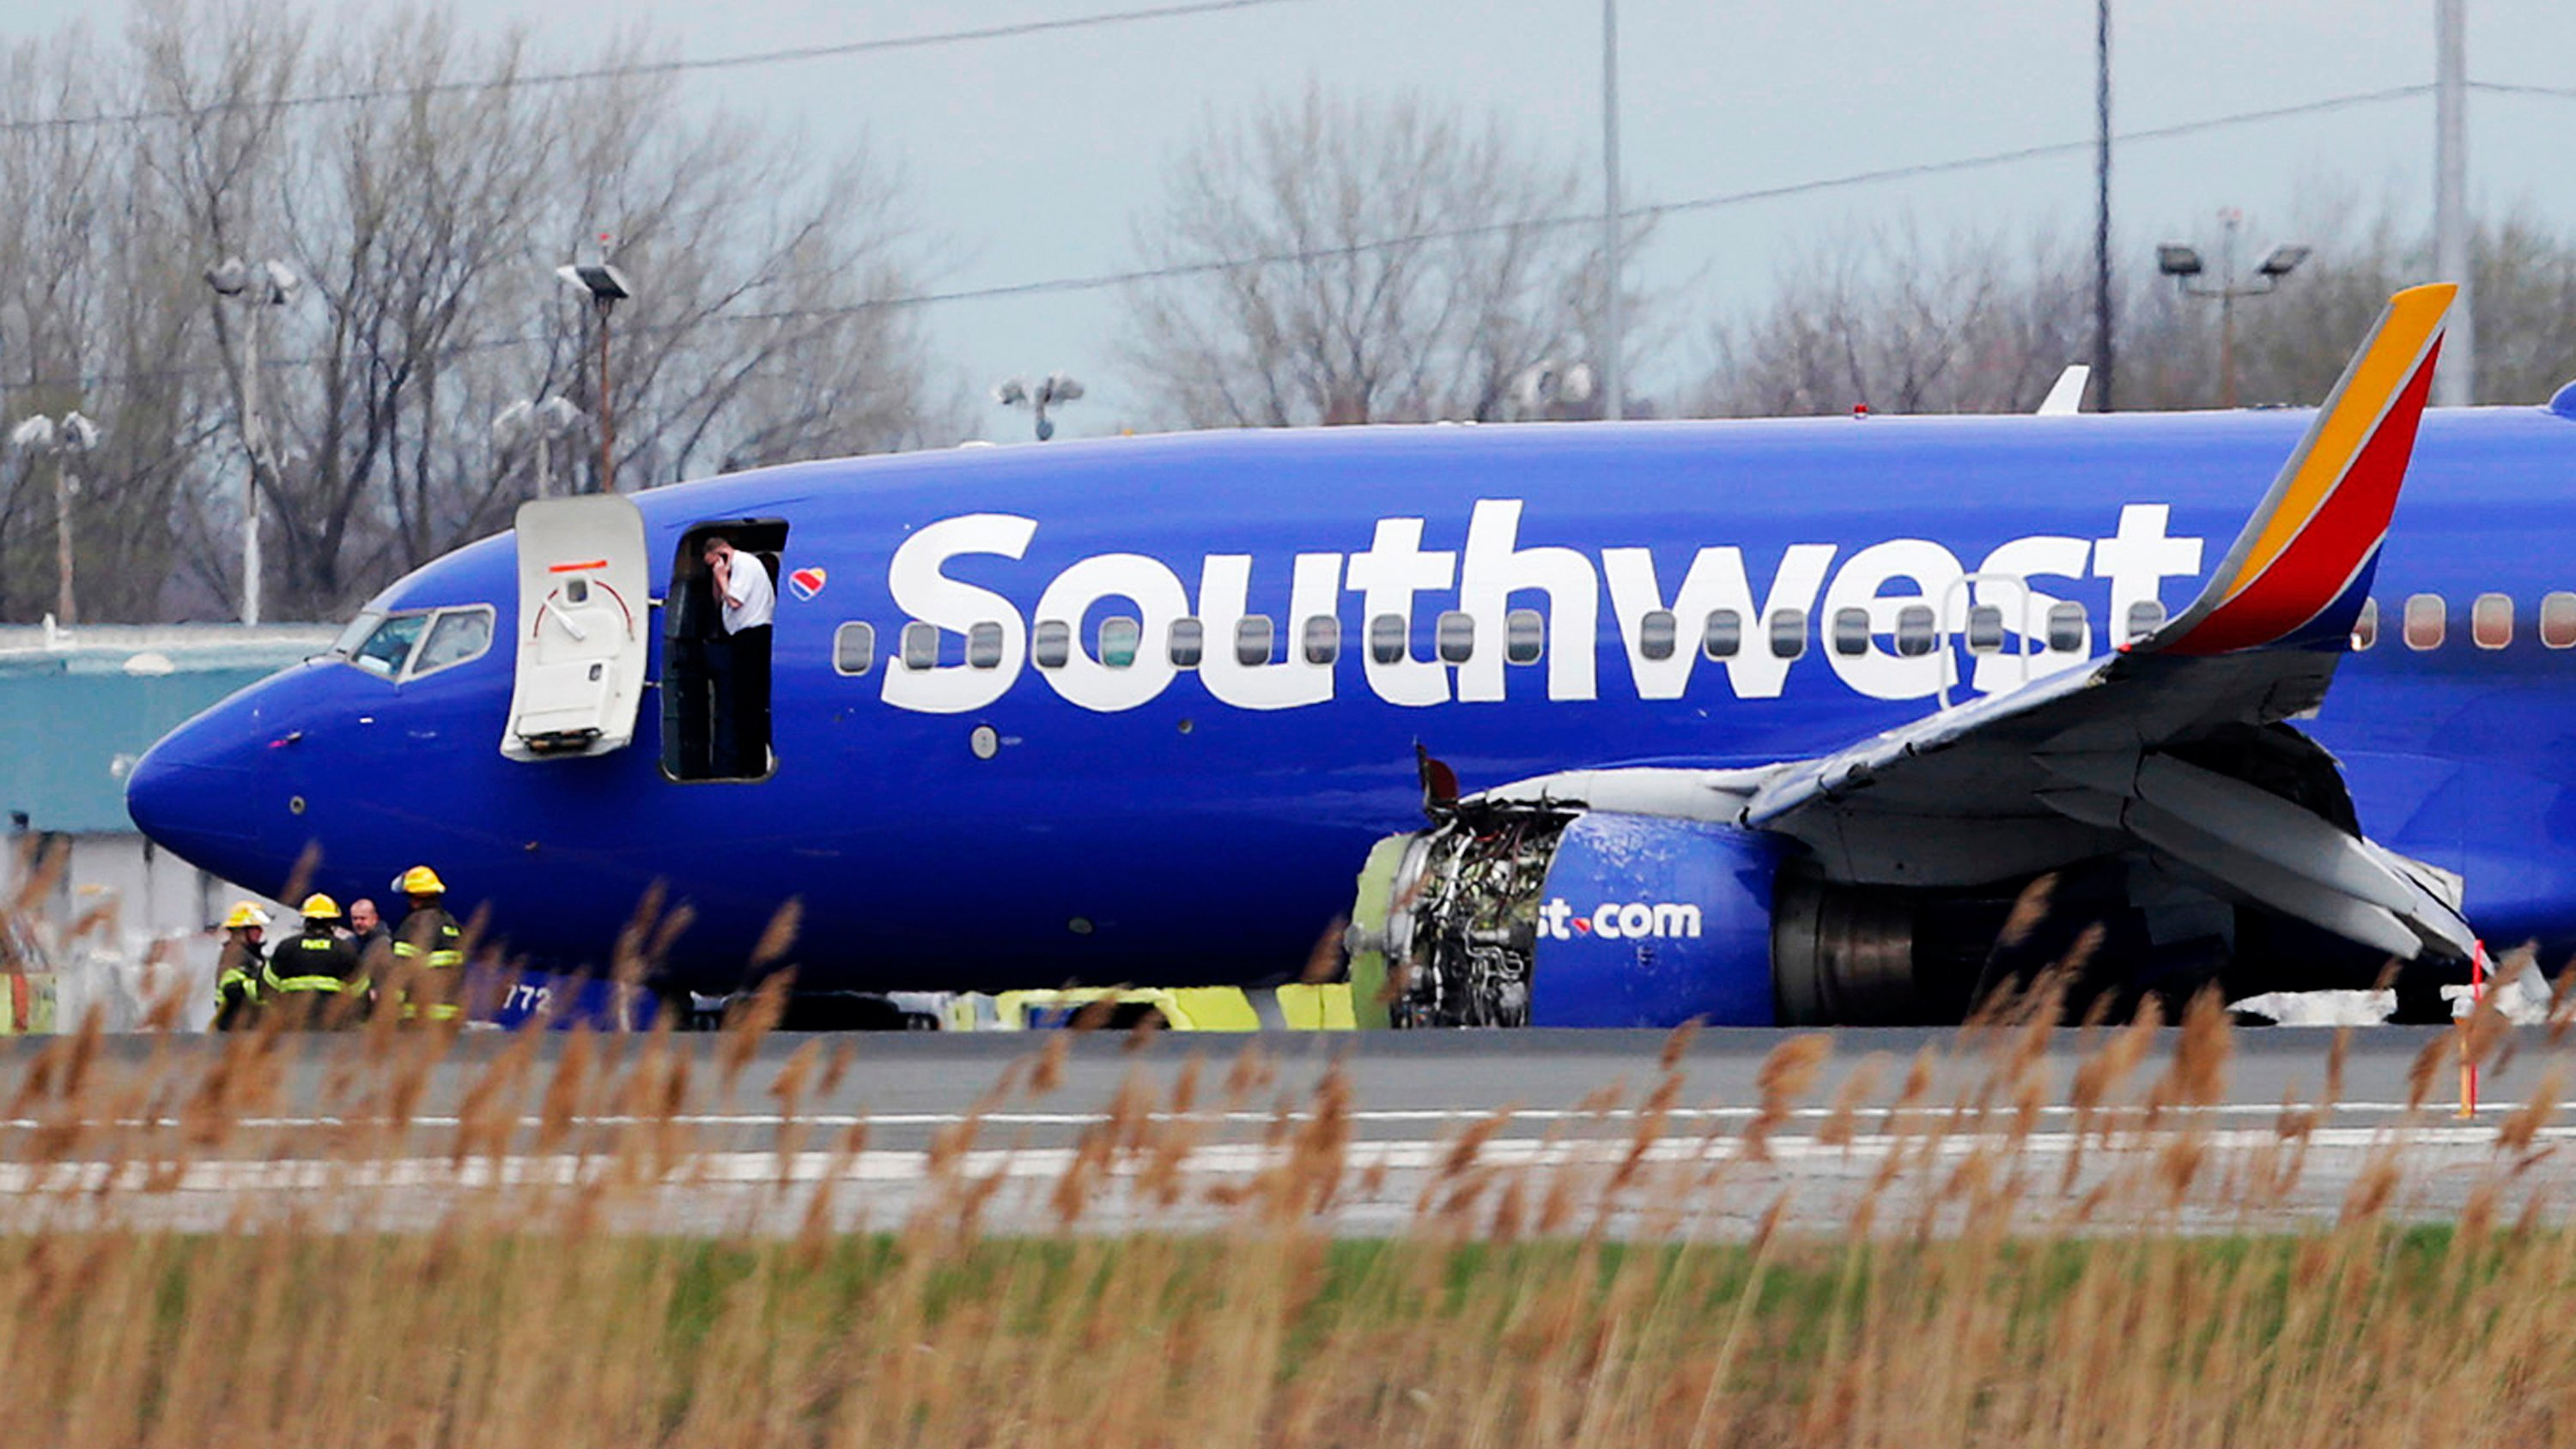 FAA orders engine inspections after fatal Southwest engine failure